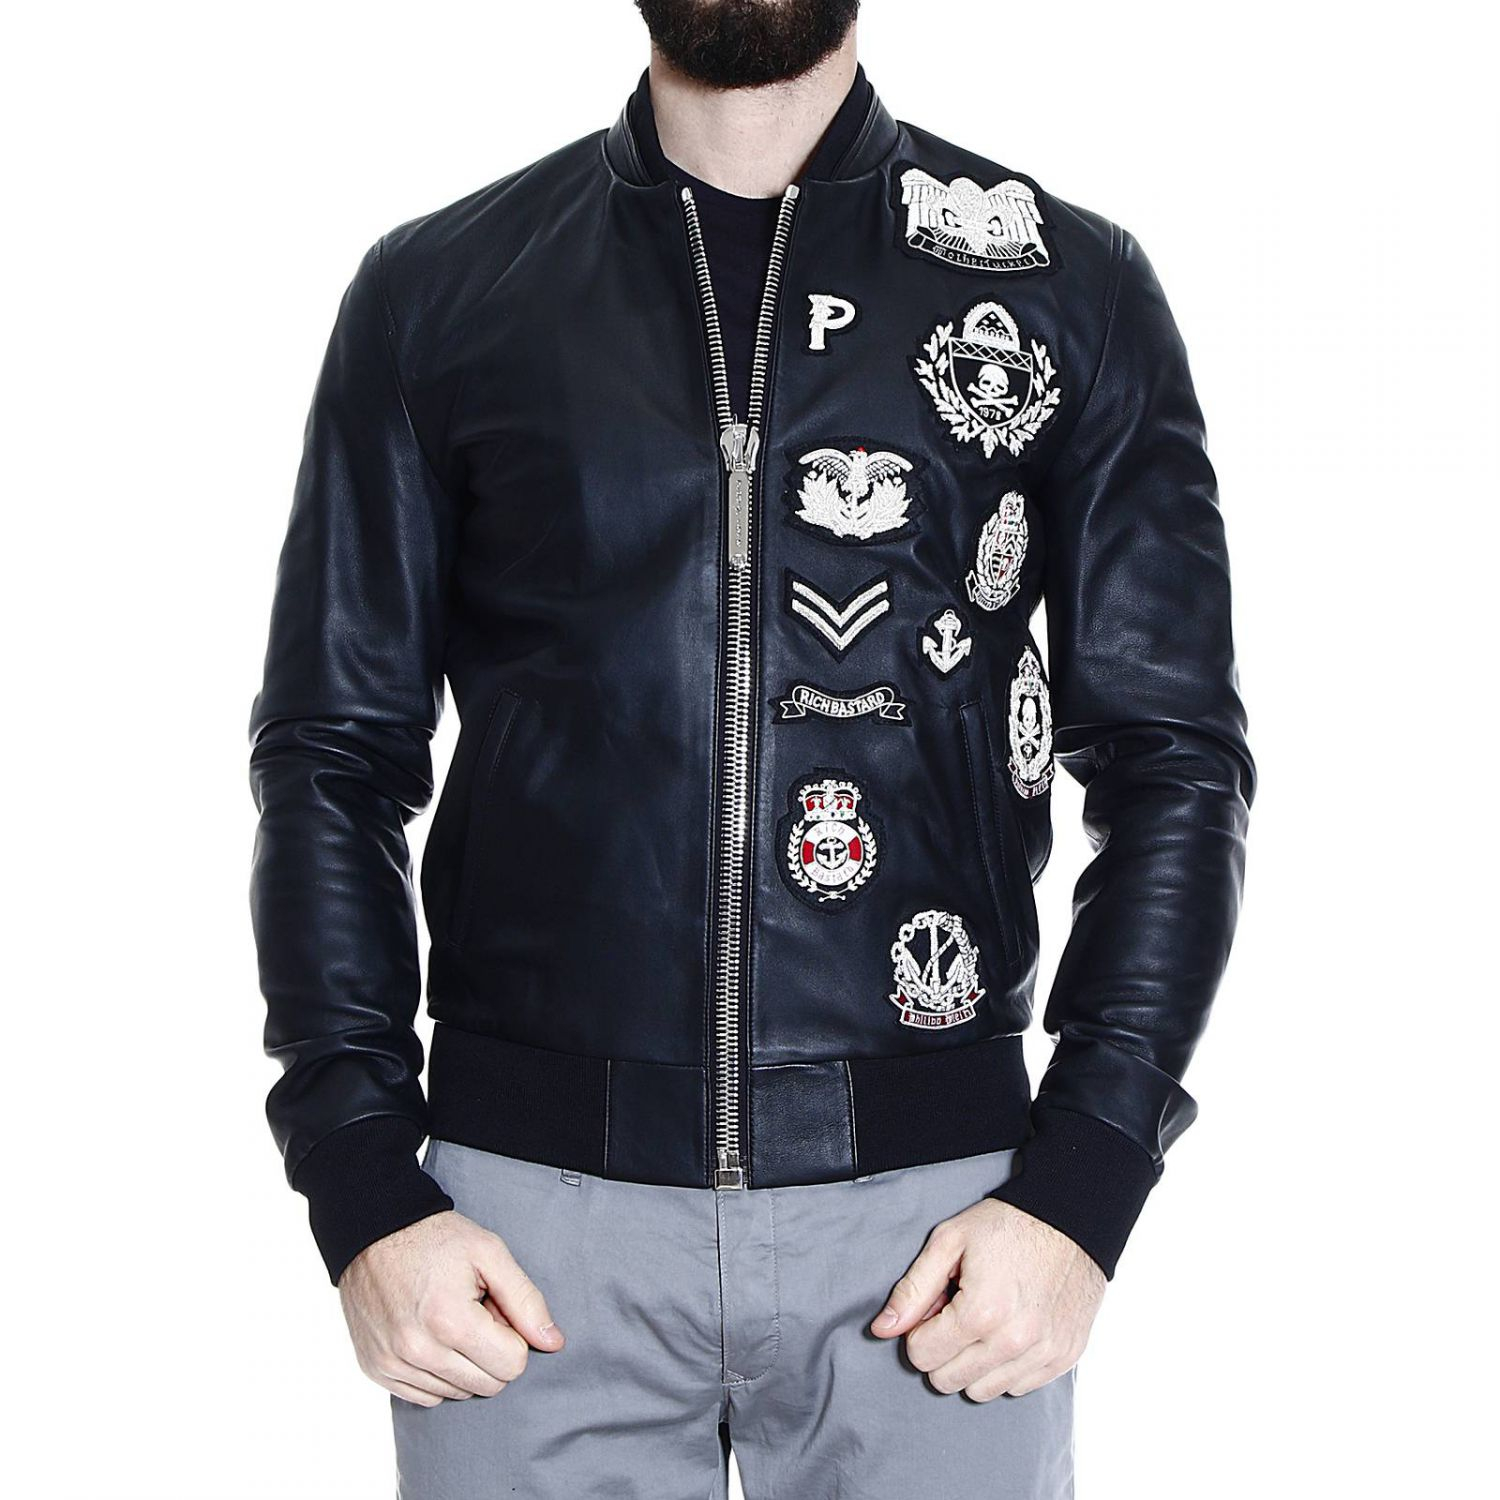 philipp plein down jacket in black for men lyst. Black Bedroom Furniture Sets. Home Design Ideas